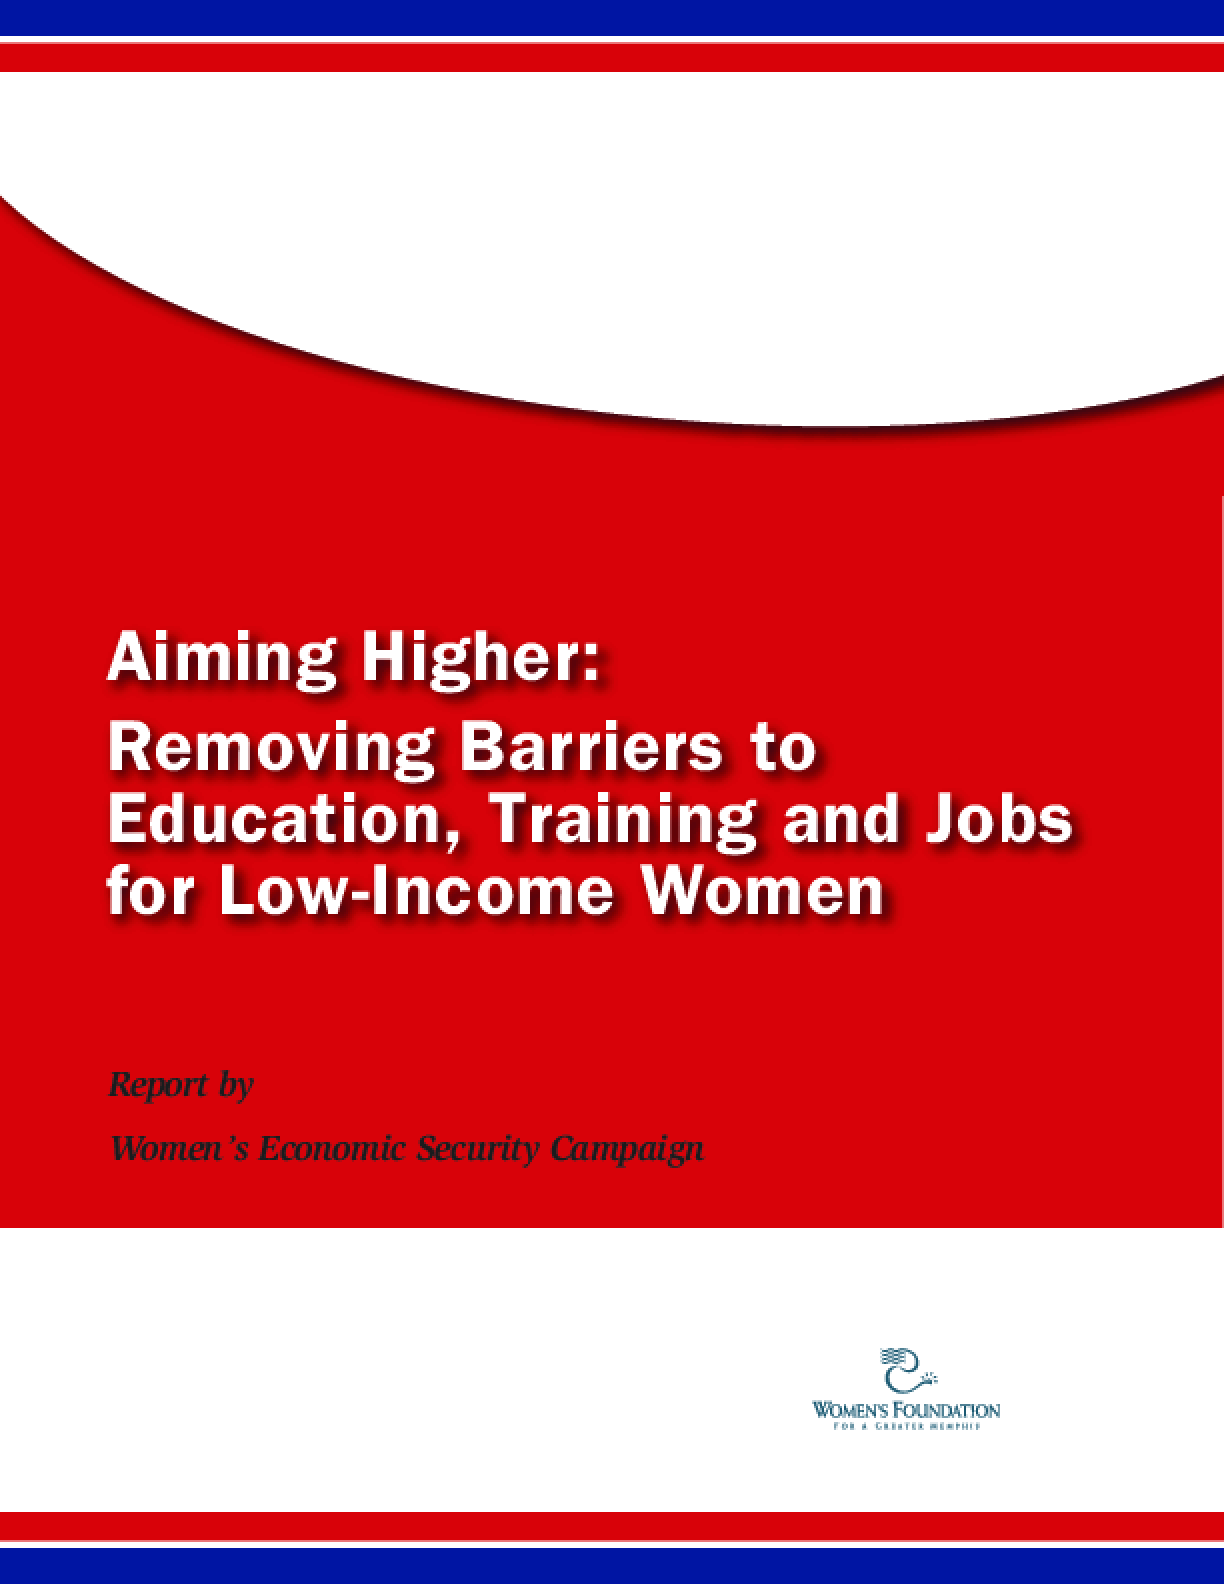 Aiming Higher: Removing Barriers to Education, Training and Jobs for Low-Income Women